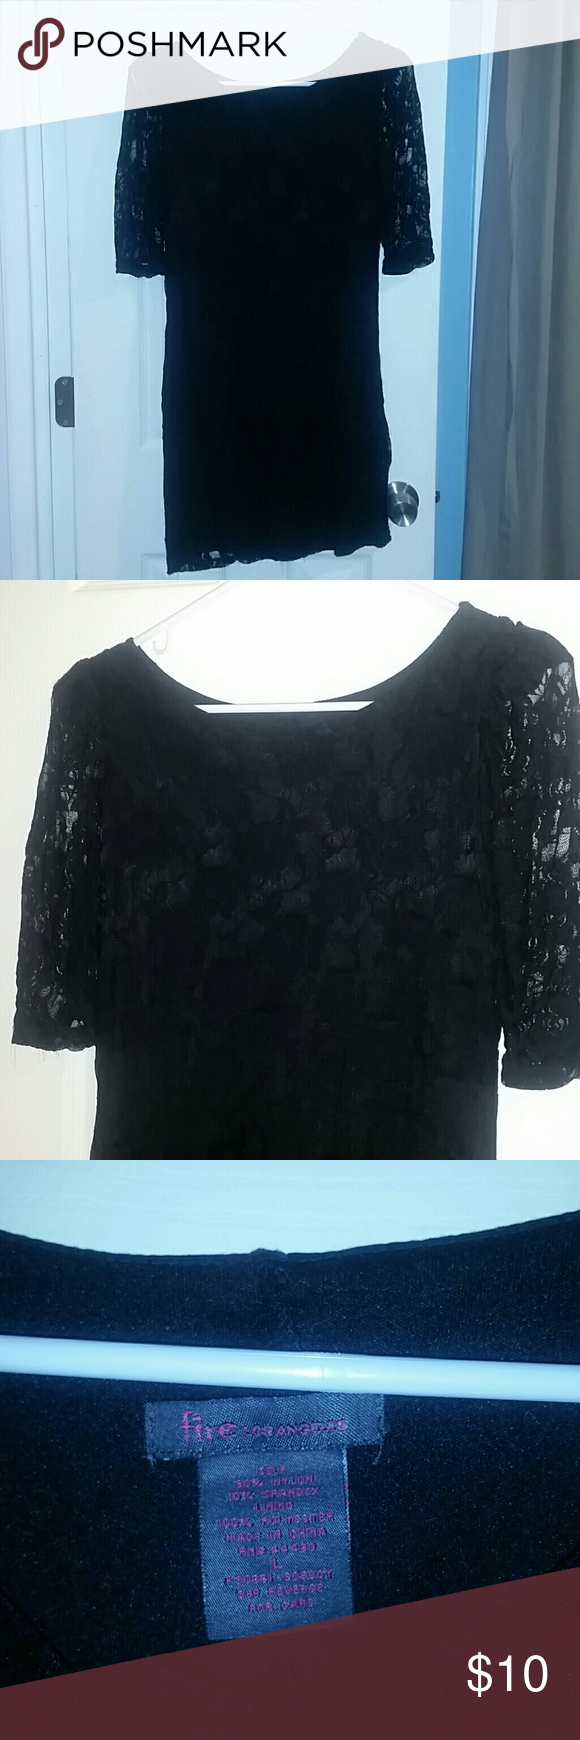 Black lace dress Lace with solid black lining.  Very short. Material stretches. Fire Los Angeles Dresses Mini